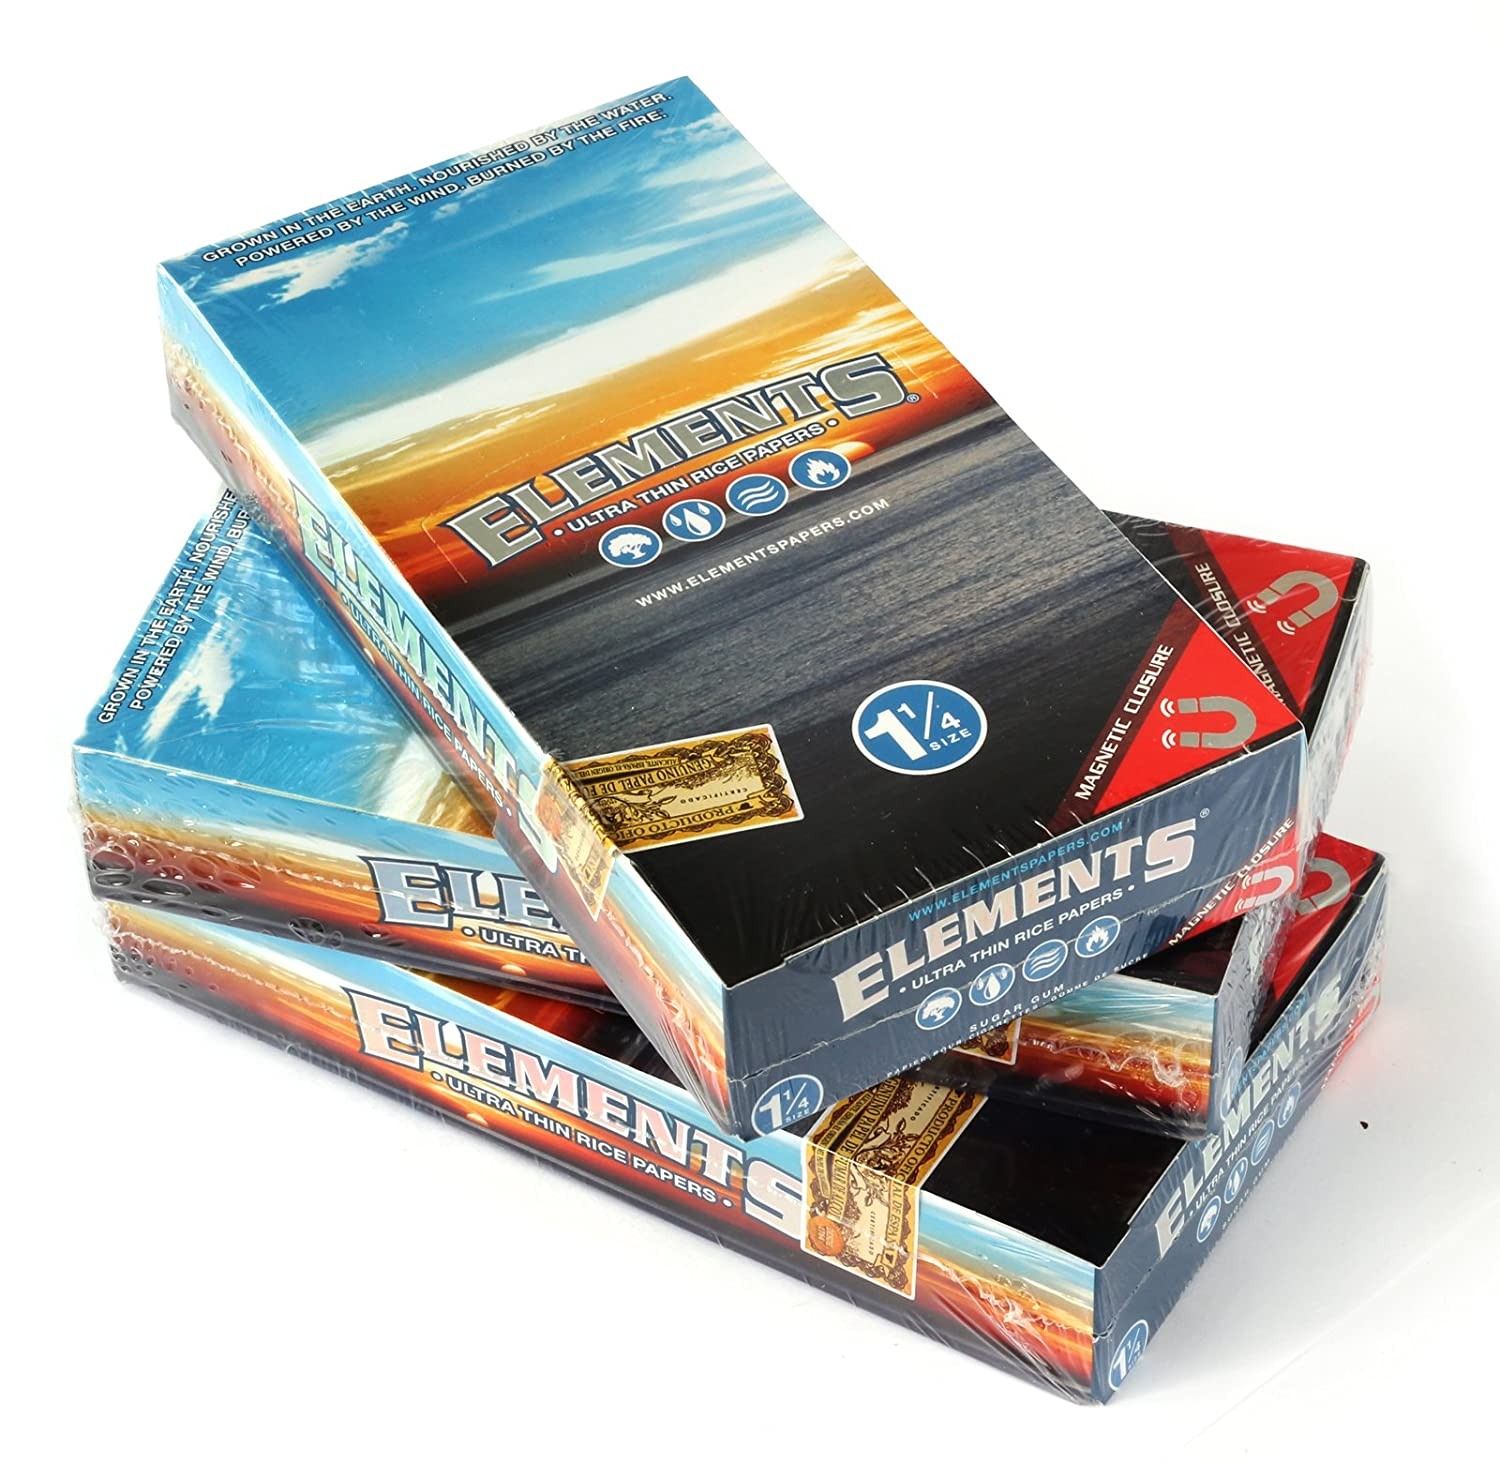 3 boxes ELEMENTS 1 1/4 Size ULTRA THIN RICE rolling paper with MAGNETIC CLOSURE